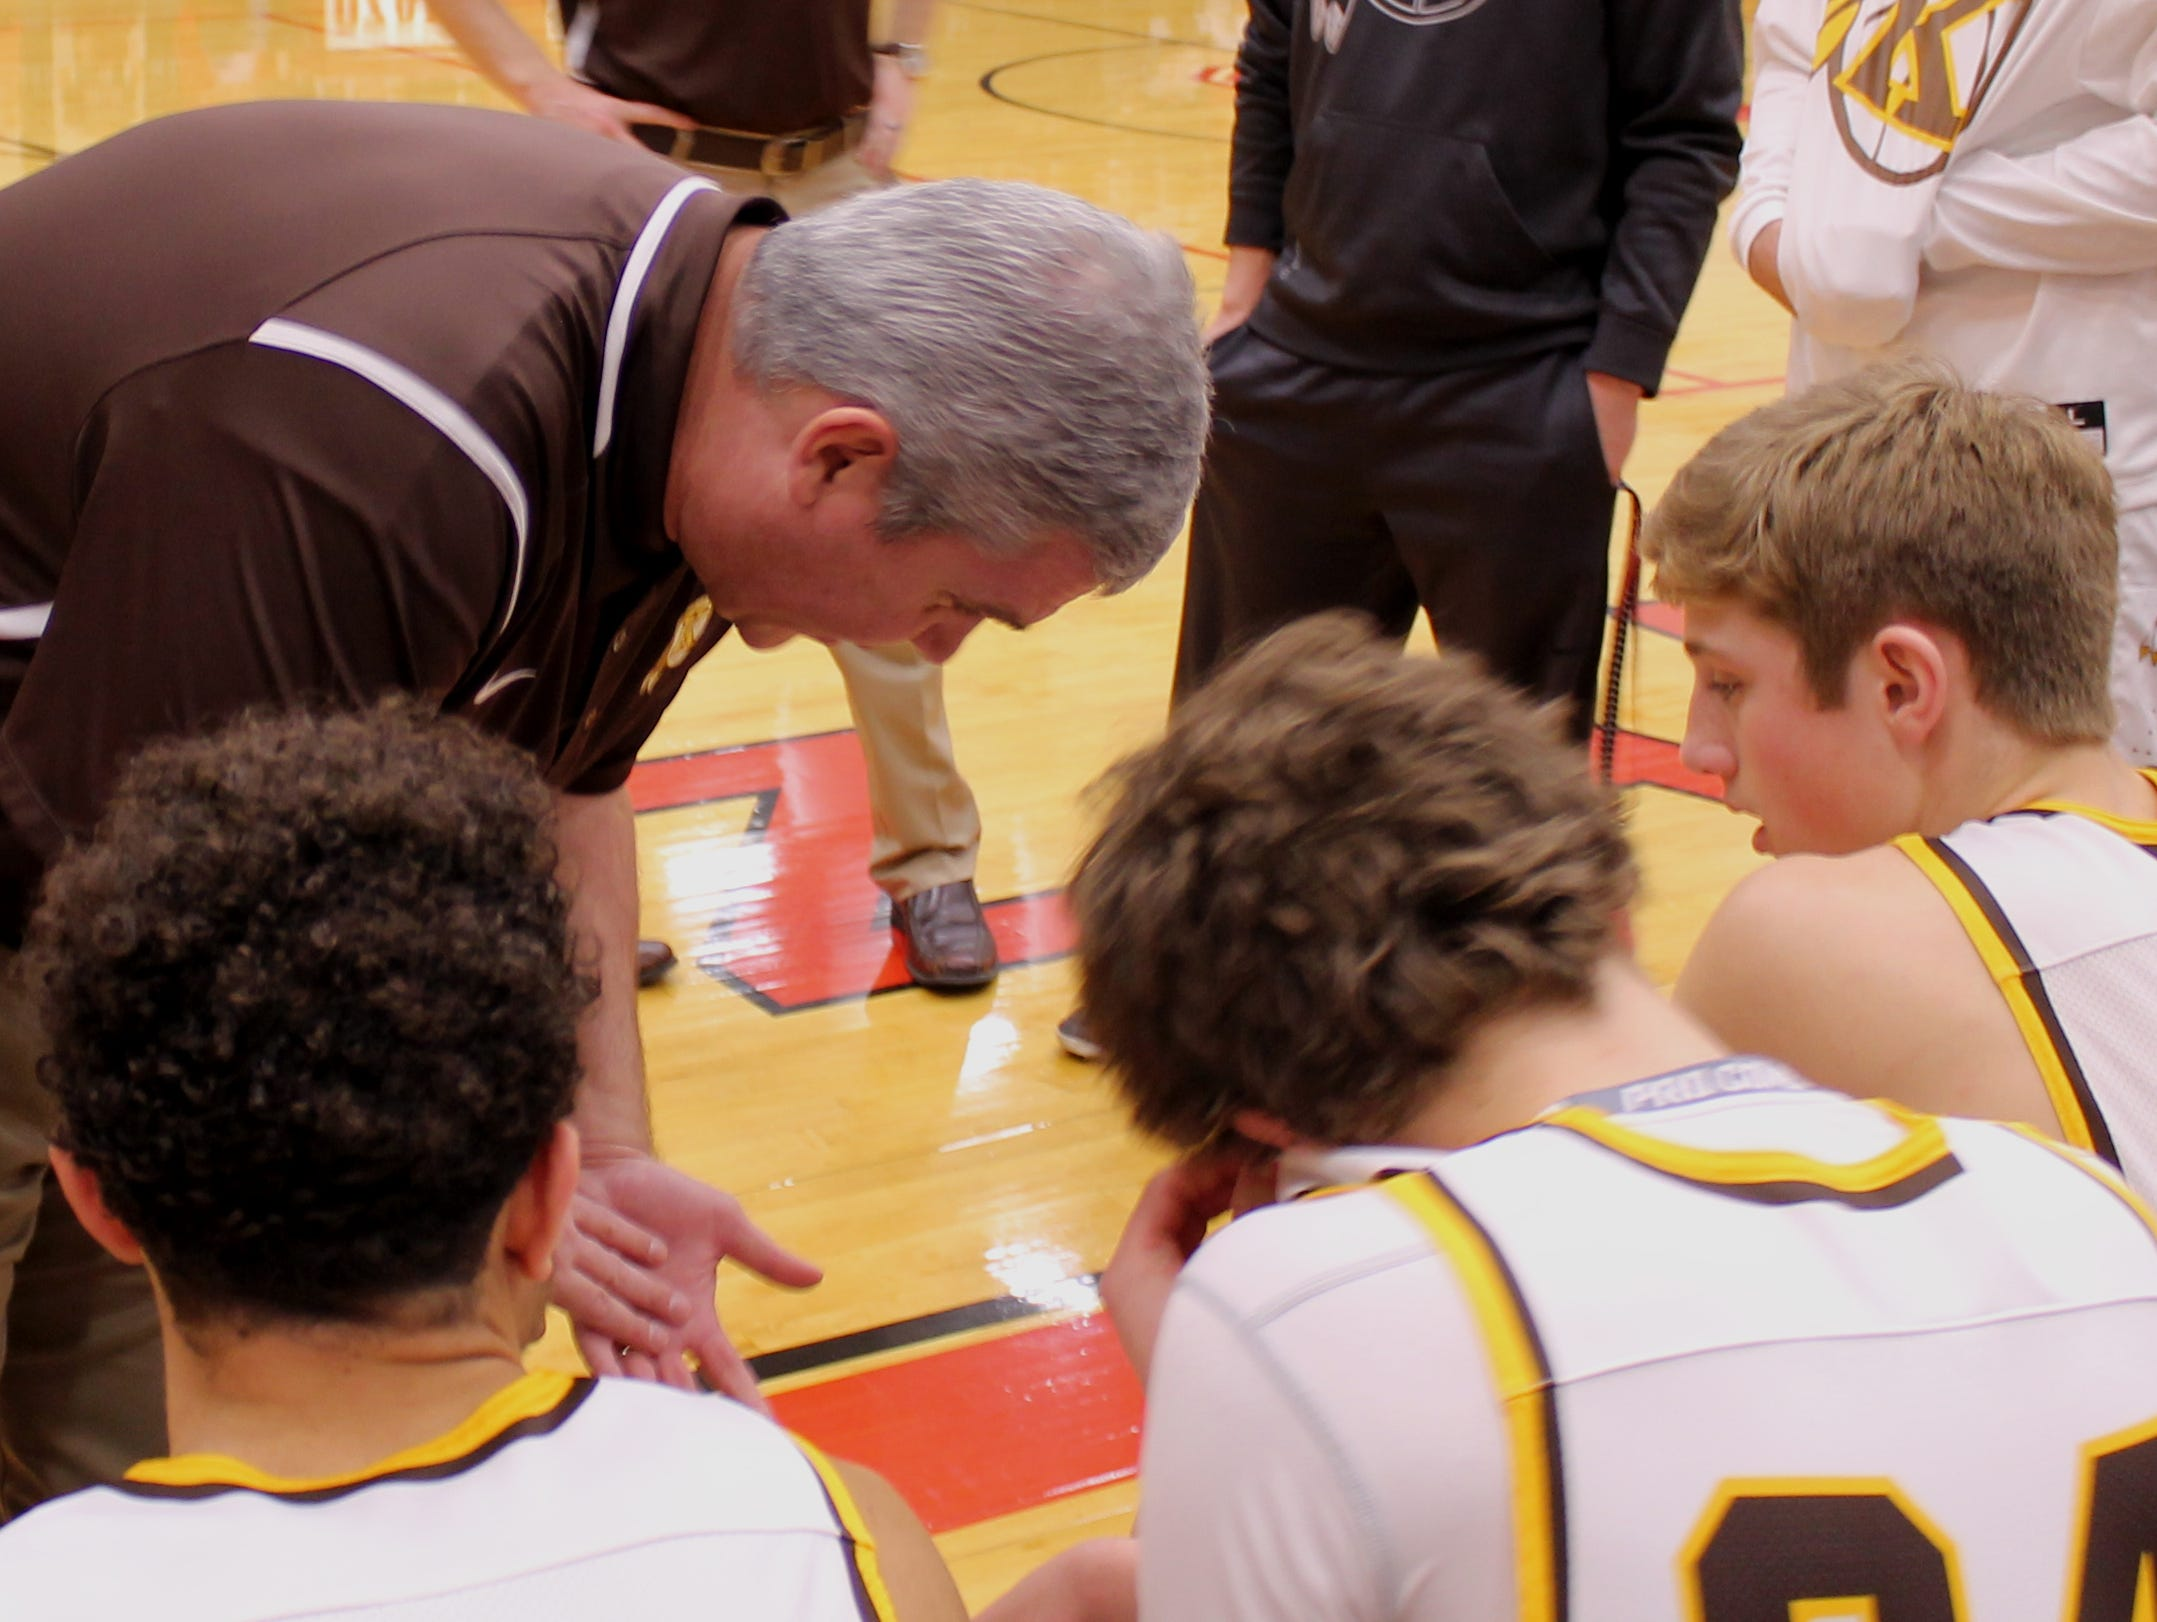 Kickapoo boys basketball coach Dick Rippee leans down to be heard over the stereo system at Ozark High School as he instructs starters, from left, Isaac Johnson, Jared Ridder and Travis Vokolek prior to a game against Barstow in the Scoreboard Guy Shootout.